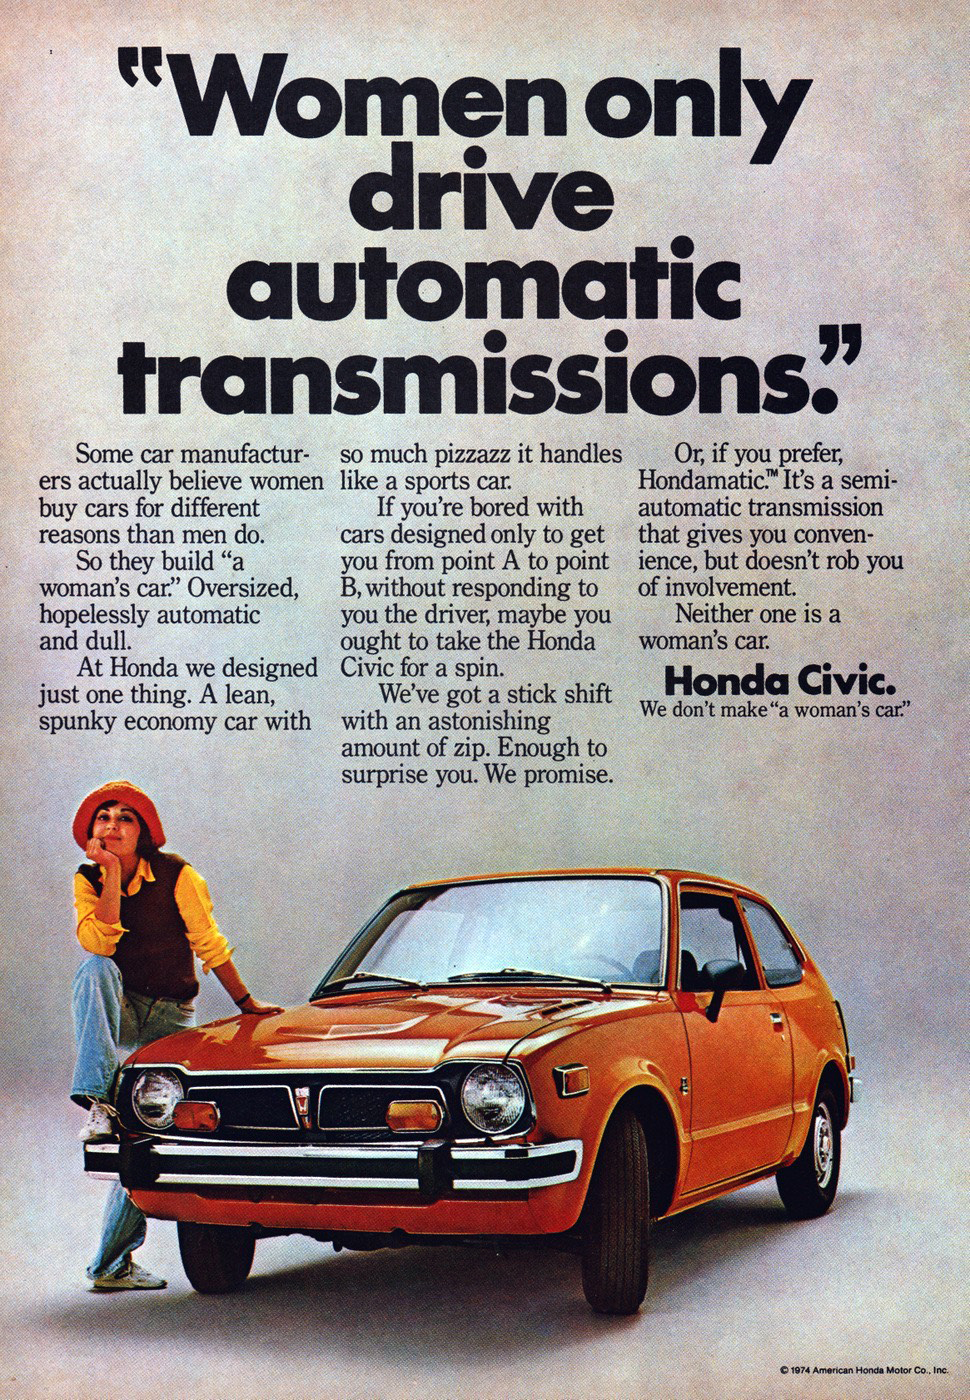 "Some car manufacturers actually believe women buy cars for different reasons than men do. So they build ""a women's car."" Oversized, hopelessly automatic and dull. At Honda we designed just one thing. A lean, spunky economy car with so much pizzazz it handles like a sports car. Honda Civic. We don't make a women's car."